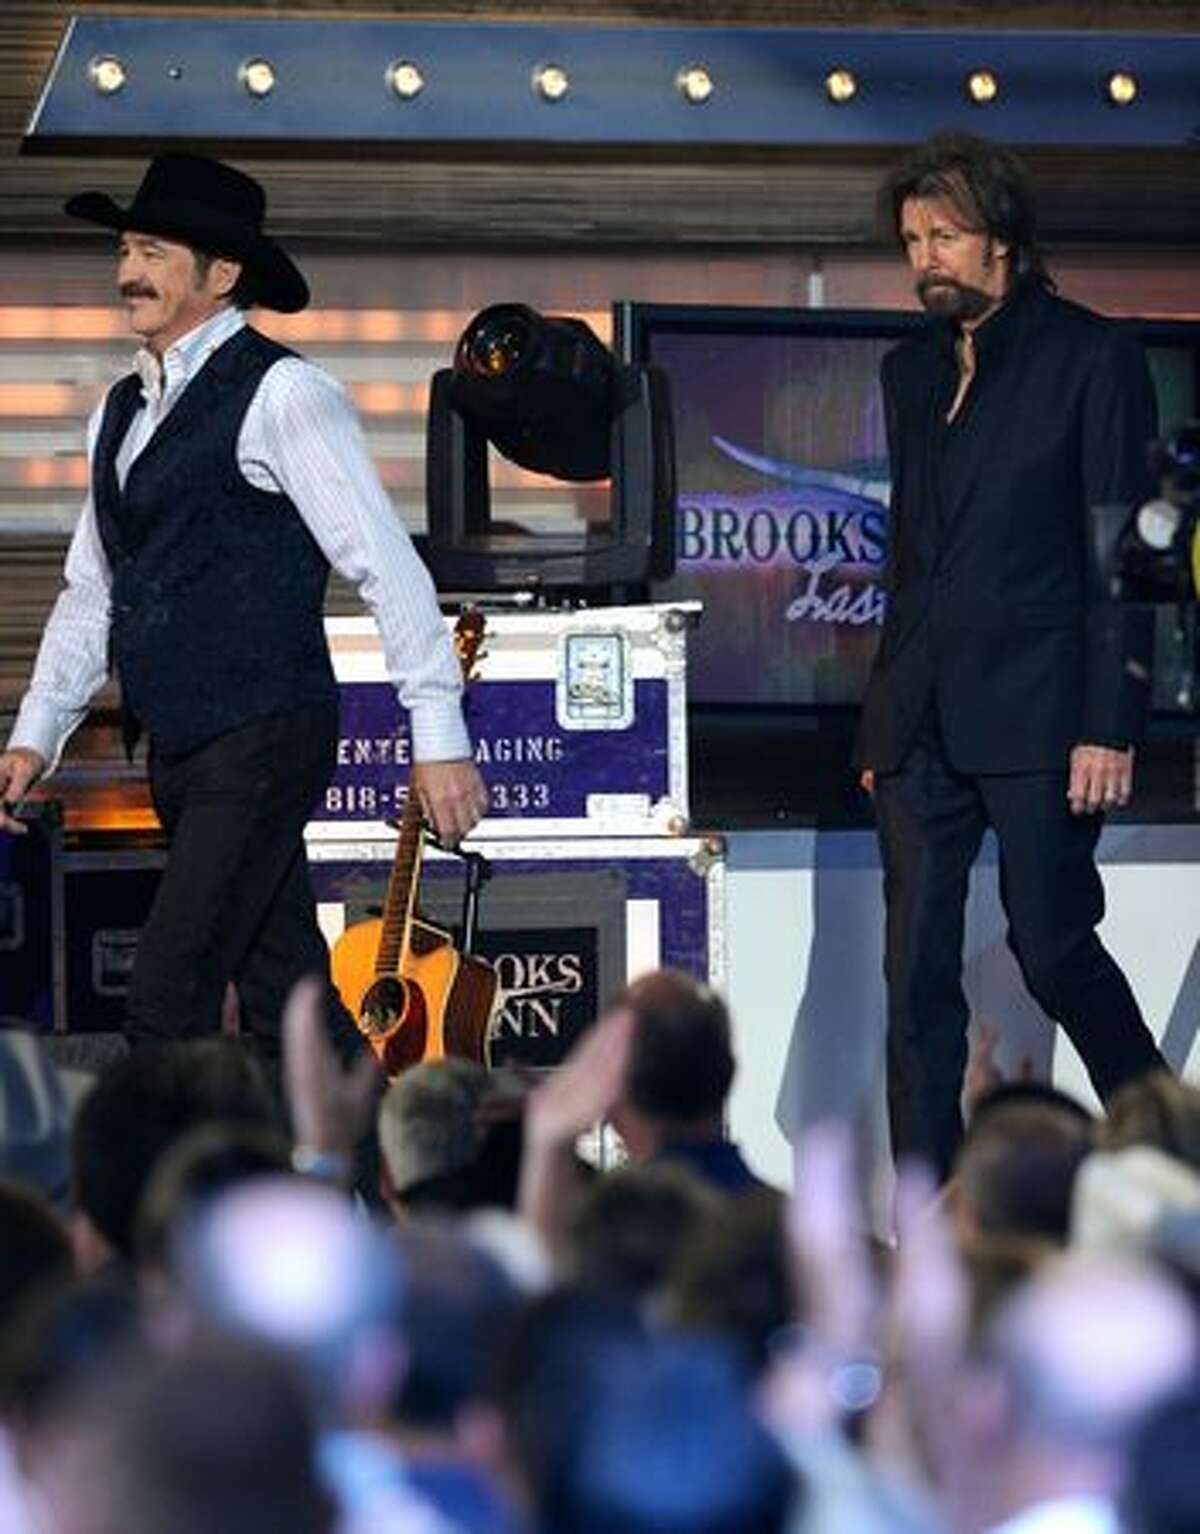 Musicians Kix Brooks (left) and Ronnie Dunn of the band Brooks & Dunn walk onstage.